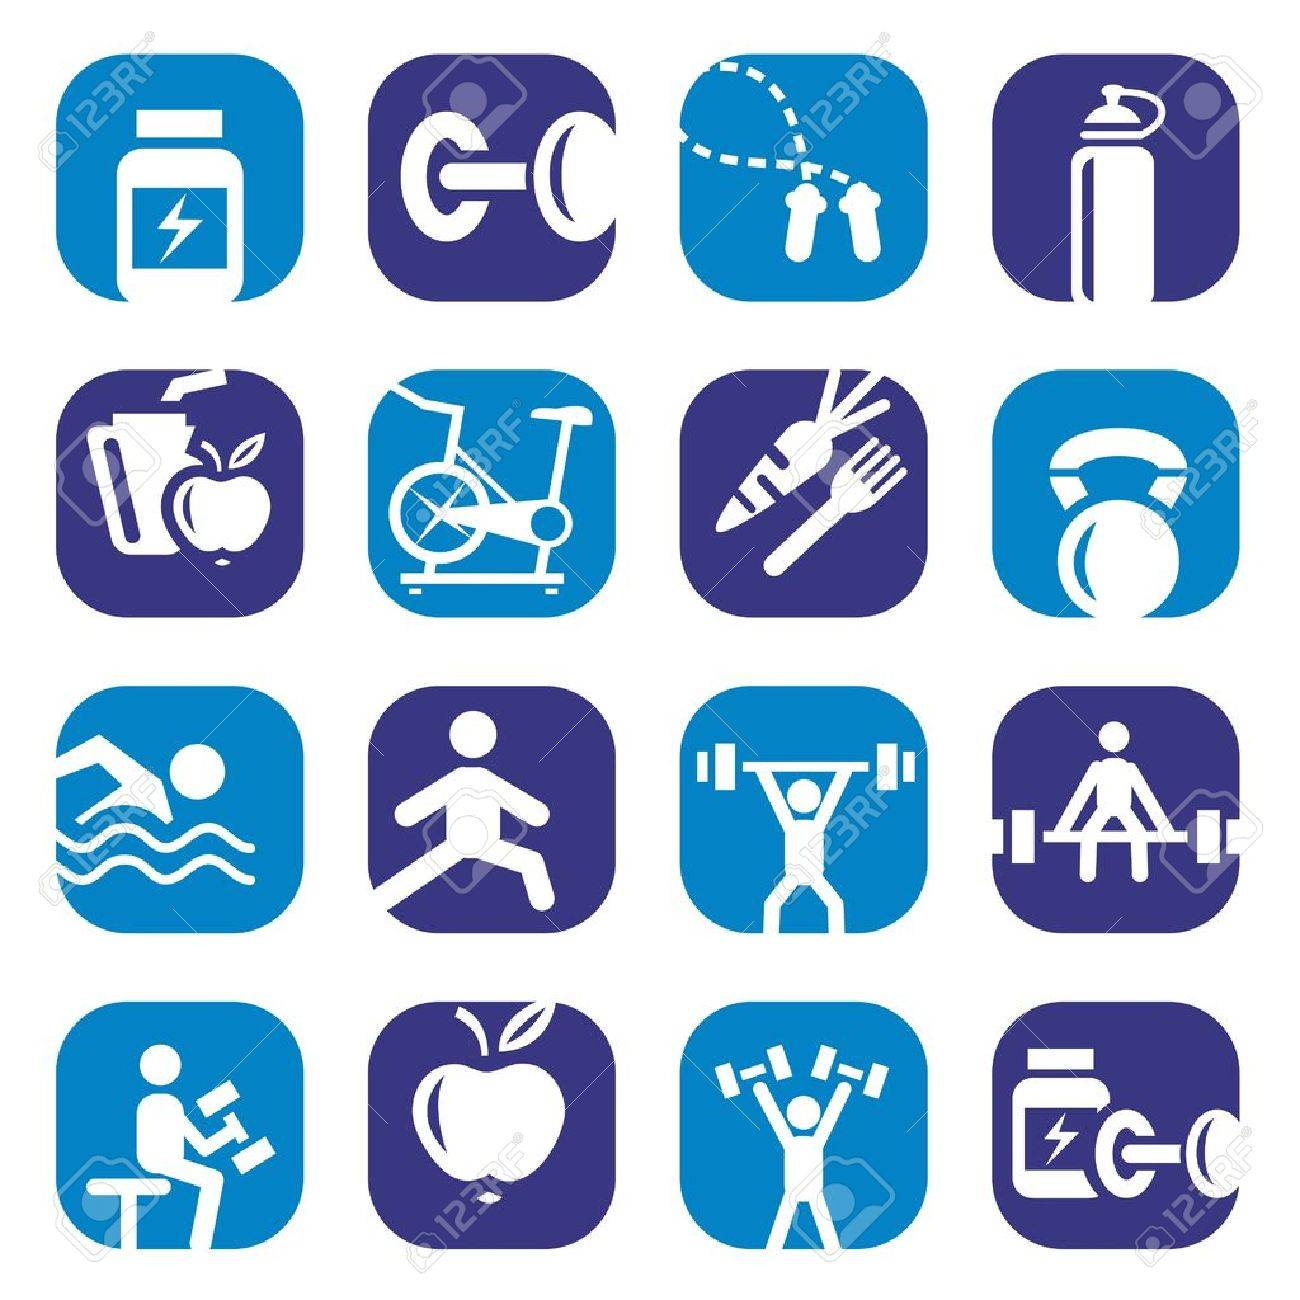 Elegant Colorful Fitness Icons Set Created For Mobile, Web And Applications Stock Vector - 18549571